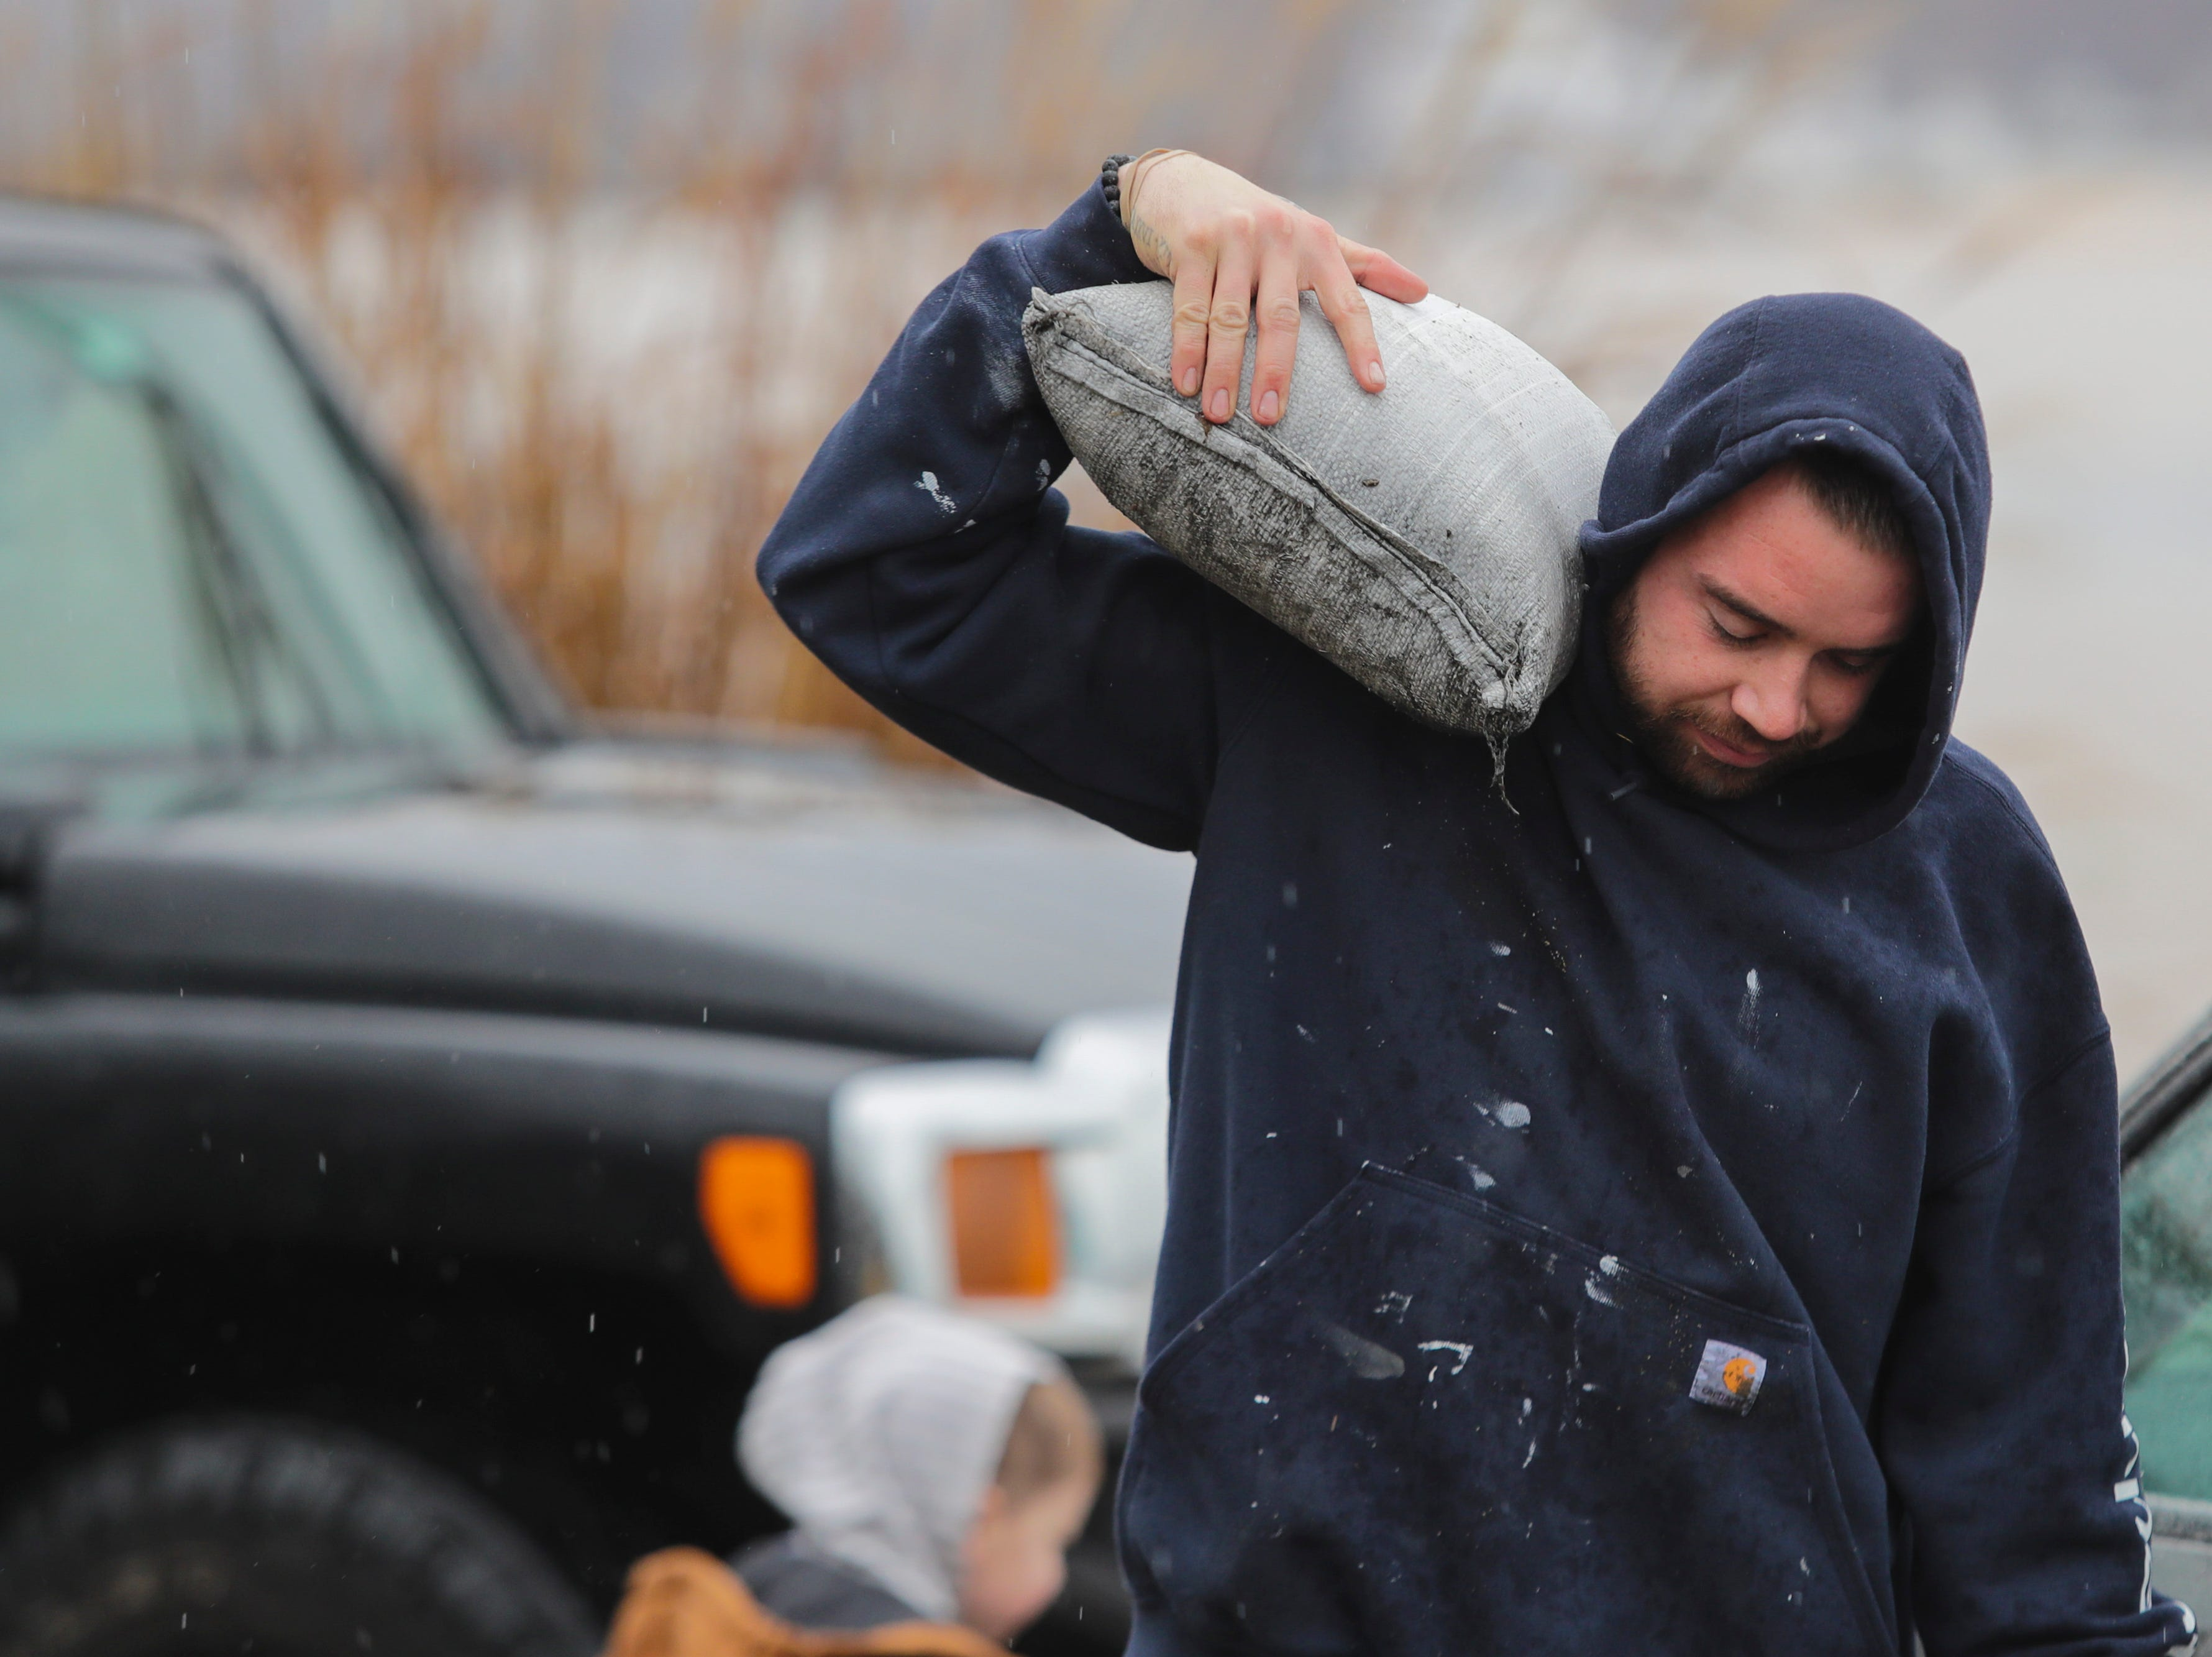 Chase Johnson loads sandbags into a property in Utica, Ind. as Ohio River water levels begin to rise. Feb. 11, 2019